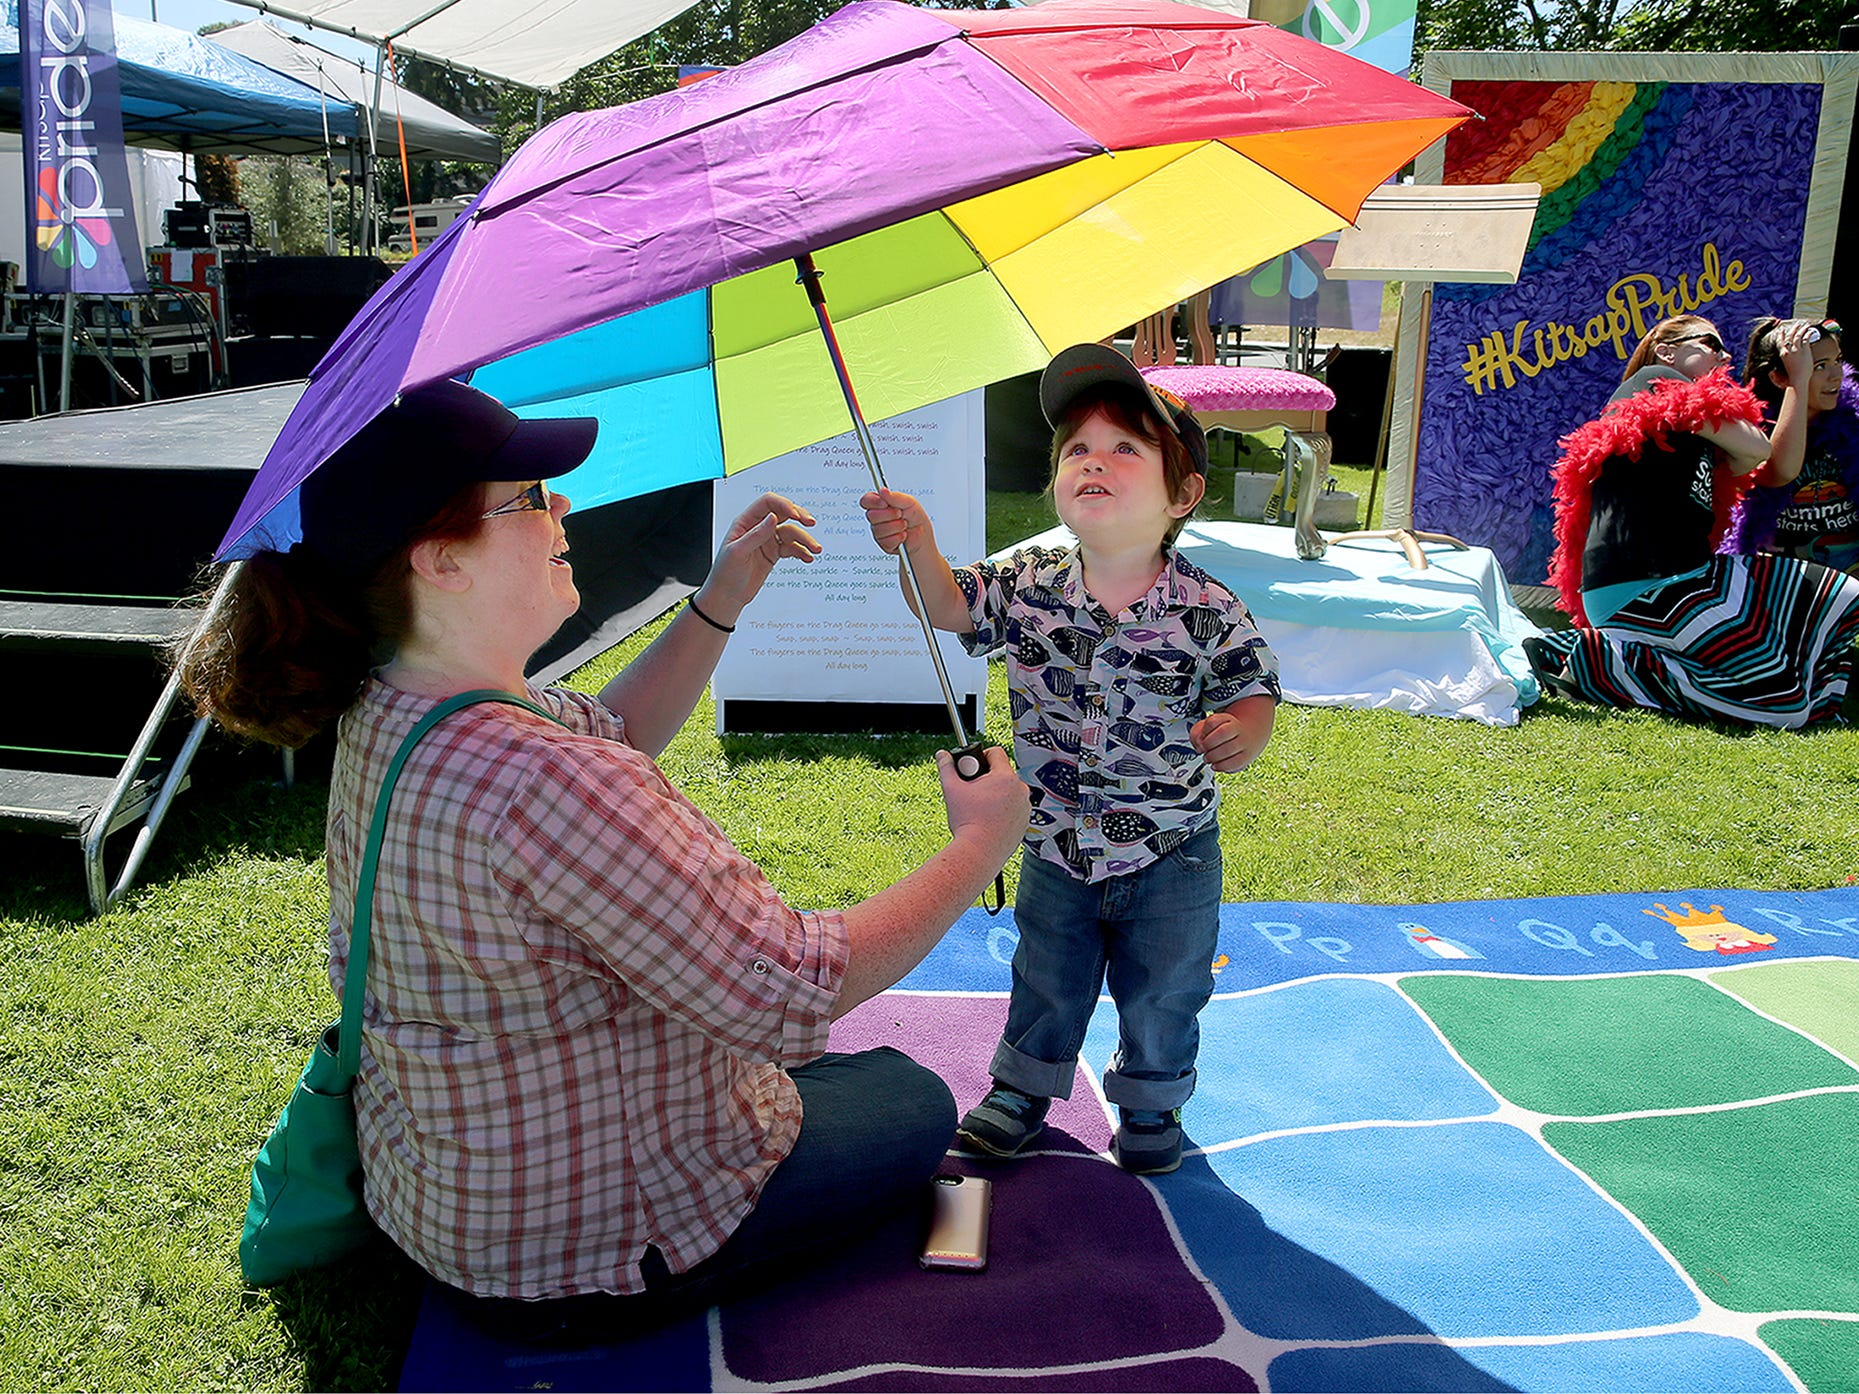 Bridget Morgan, of Bremerton, and her son Ronan, 2, stay in the shade on a hot day under a rainbow umbrella during the Kitsap Pride Festival on Saturday July, 21, 2018 at Evergreen-Rotary Park in Bremerton.